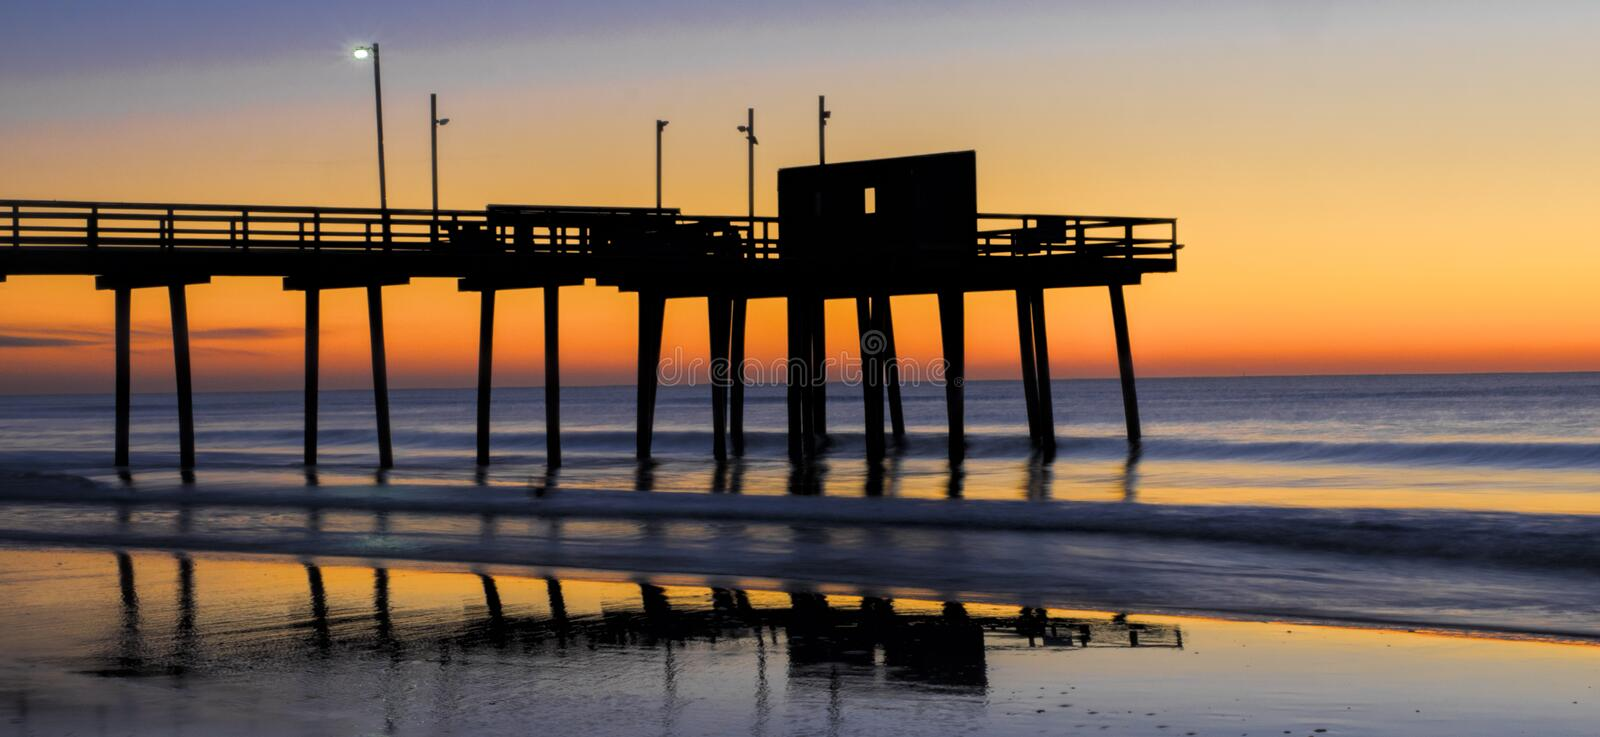 Avalon, New Jersey Dawn Breaks photographie stock